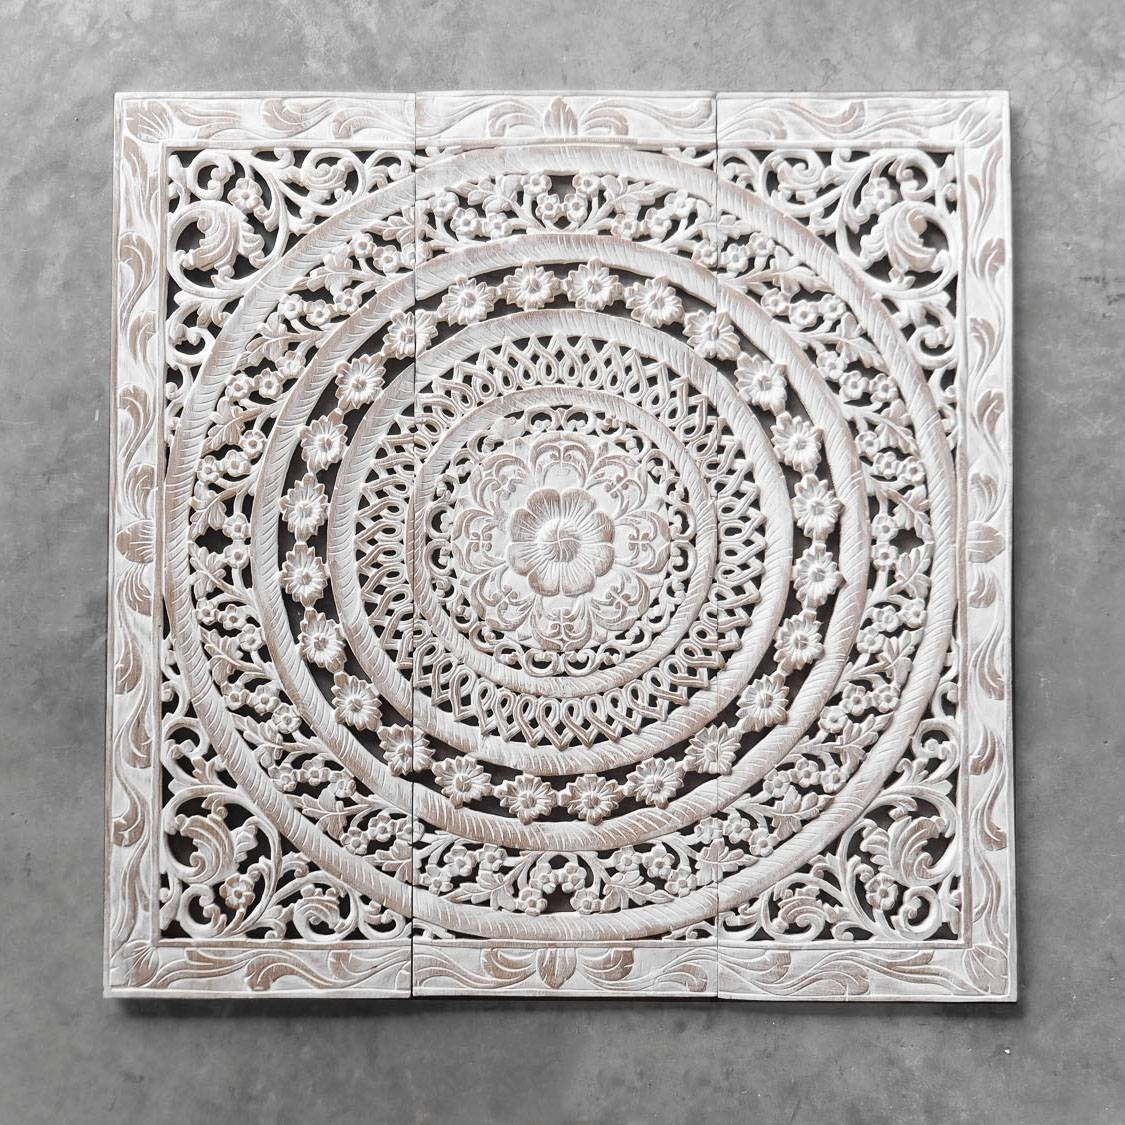 Wood Carved Wall Art | Himalayantrexplorers Pertaining To Latest Wooden Wall Art Panels (View 15 of 20)